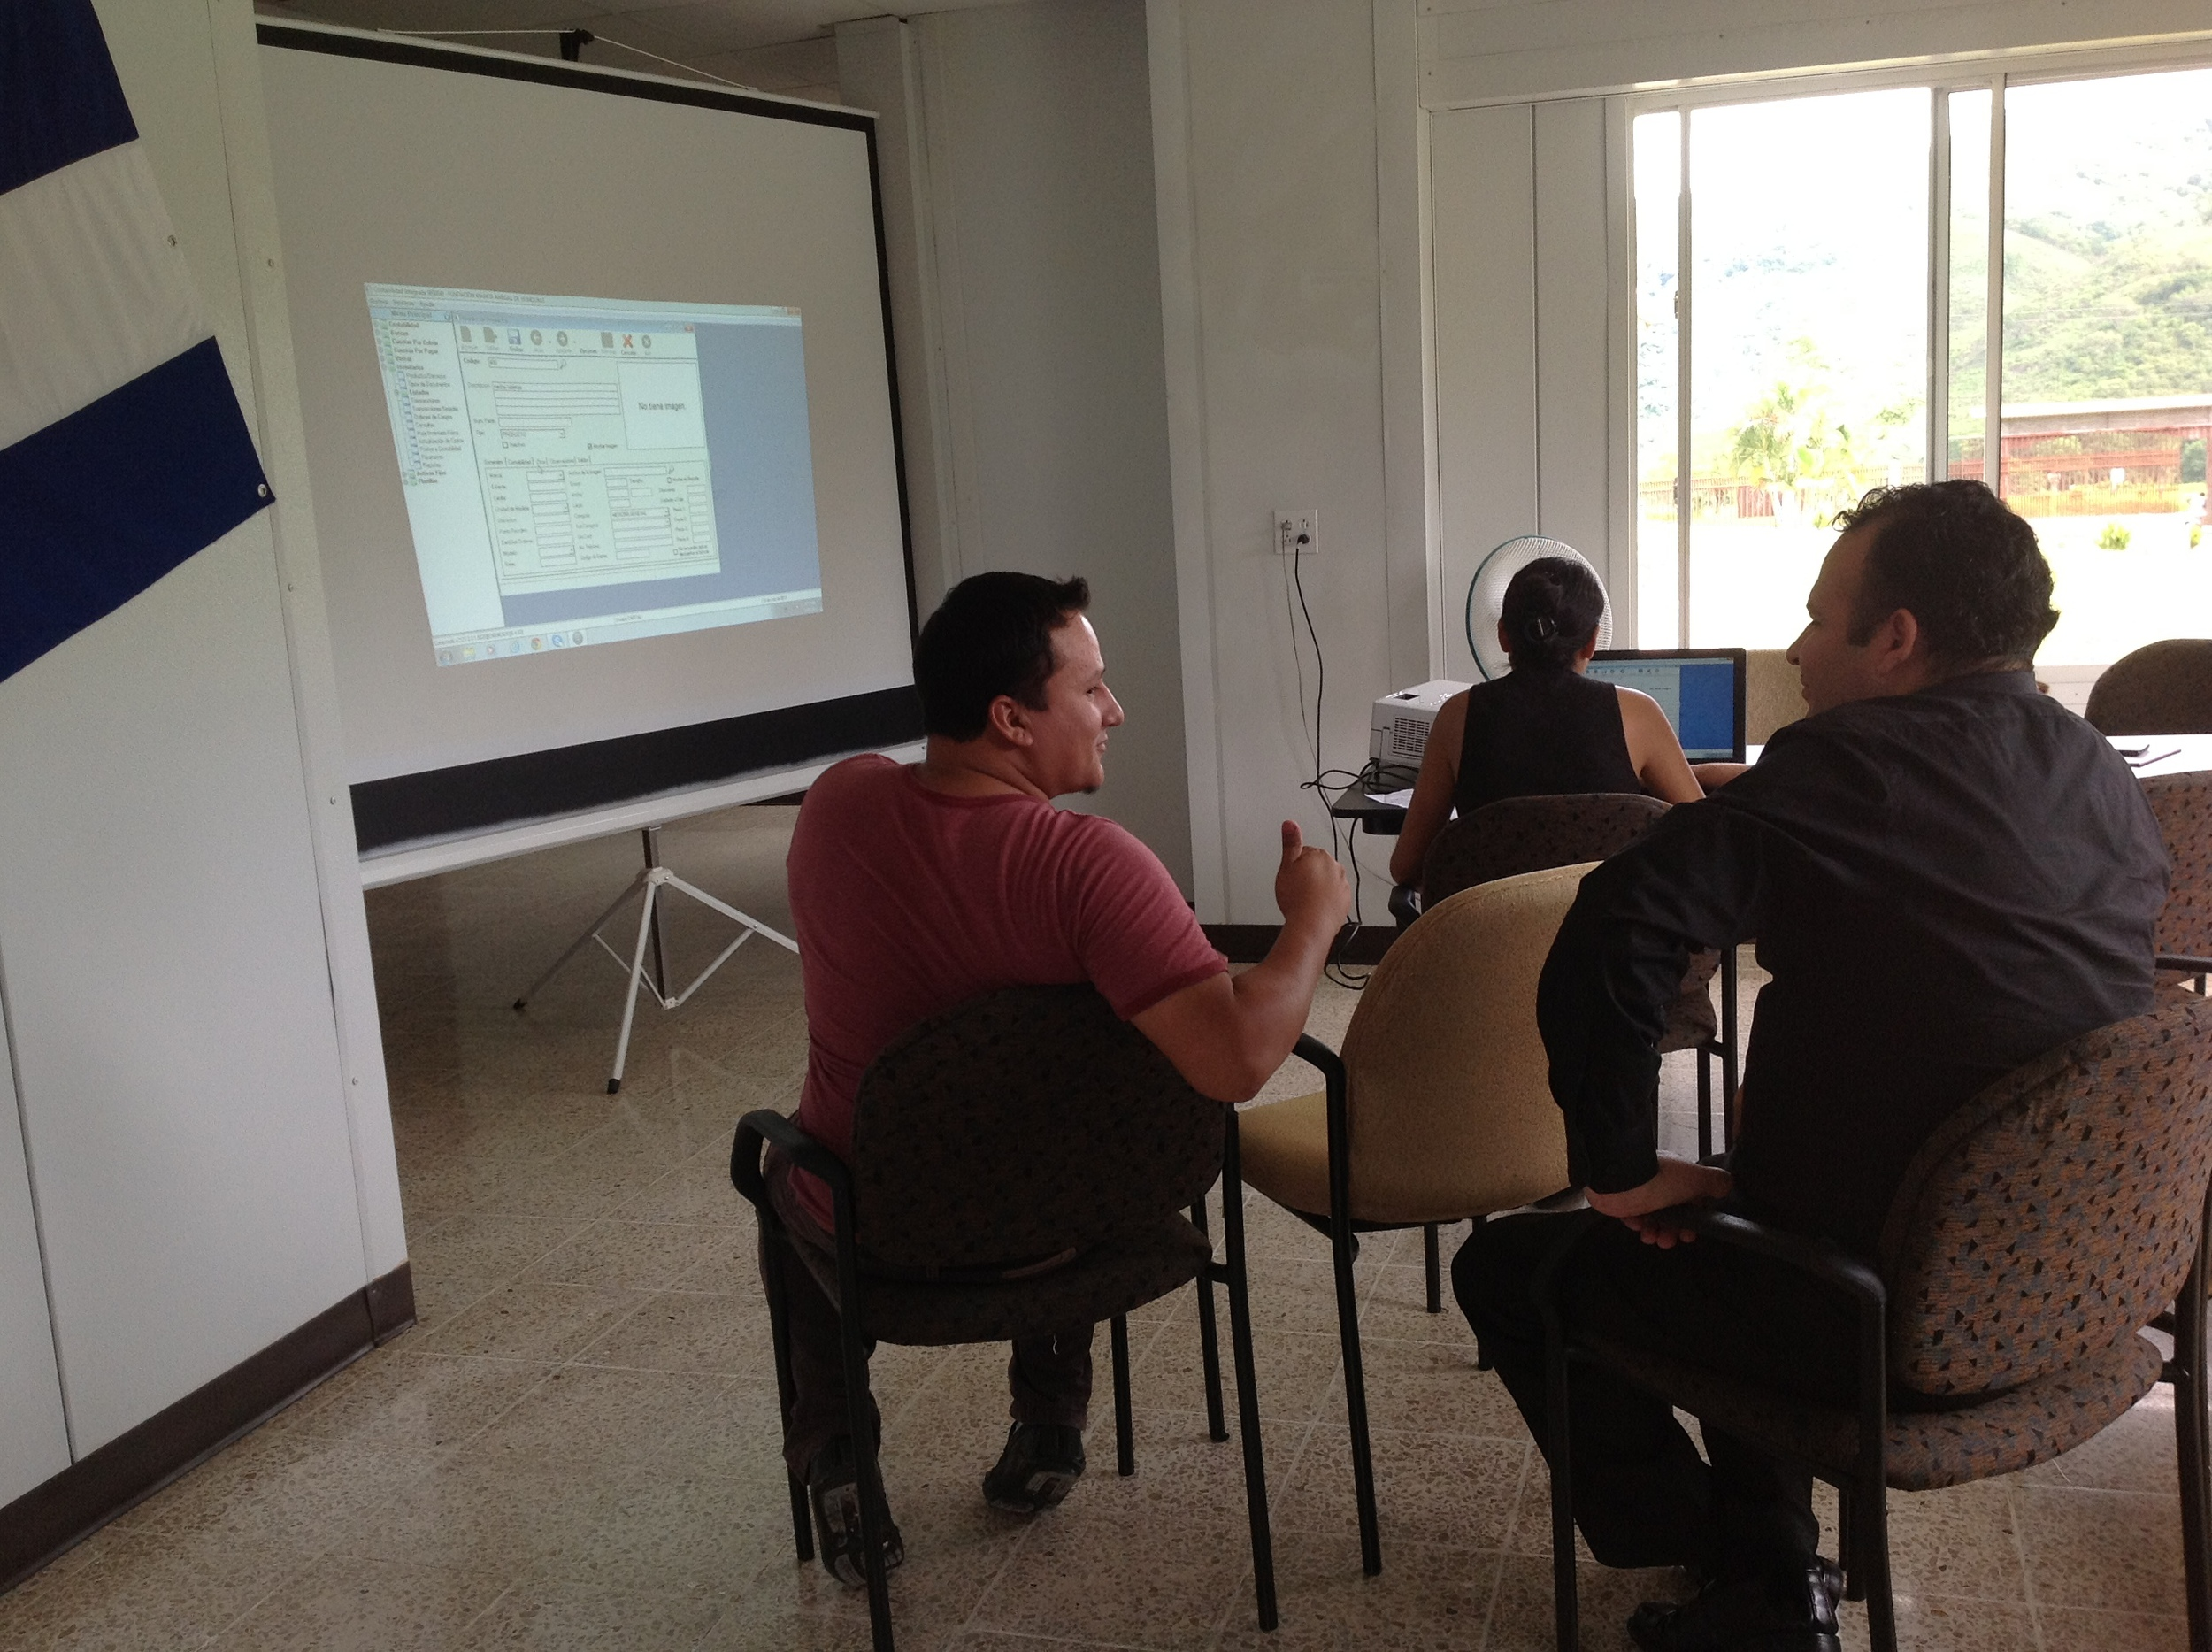 Manos Amigas purchased new computers for the clinic to increase efficiency of the clinic's operation. The staff is being trained on newly installed software for financial accounting and inventory control of supplies and medications.